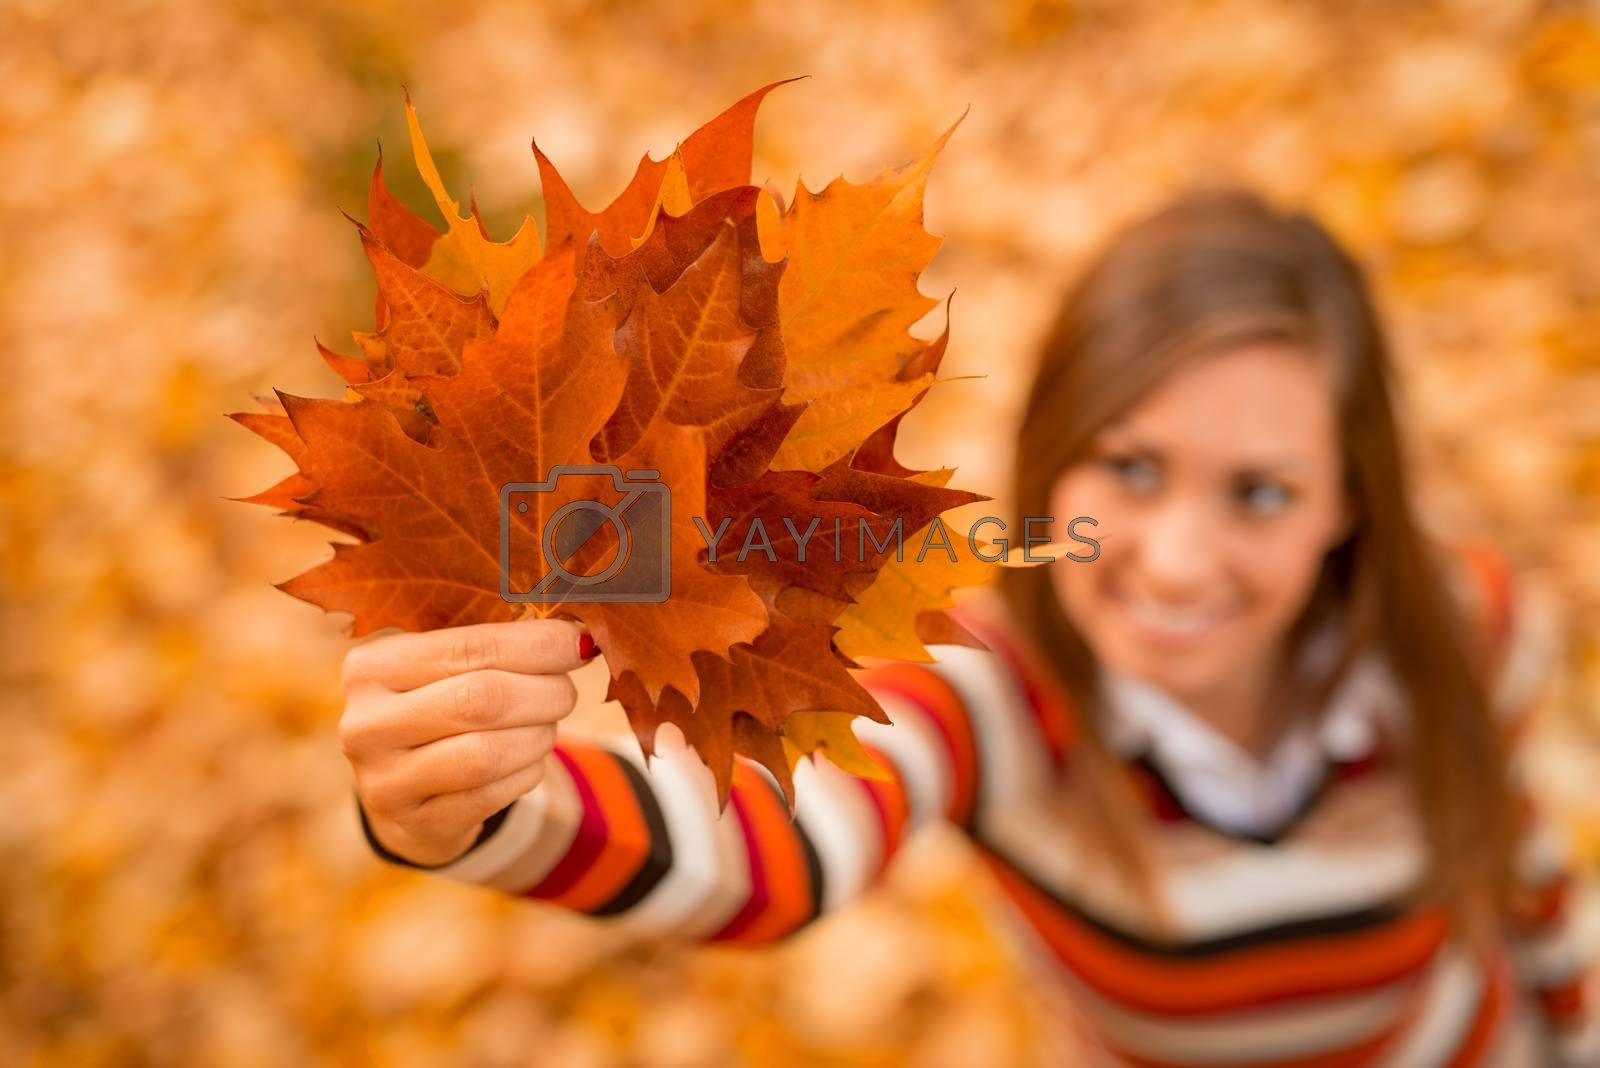 Close-up of a young woman enjoying in sunny forest in autumn colors. She is holding golden leaves. Selective focus. Focus on foreground, on leaf.